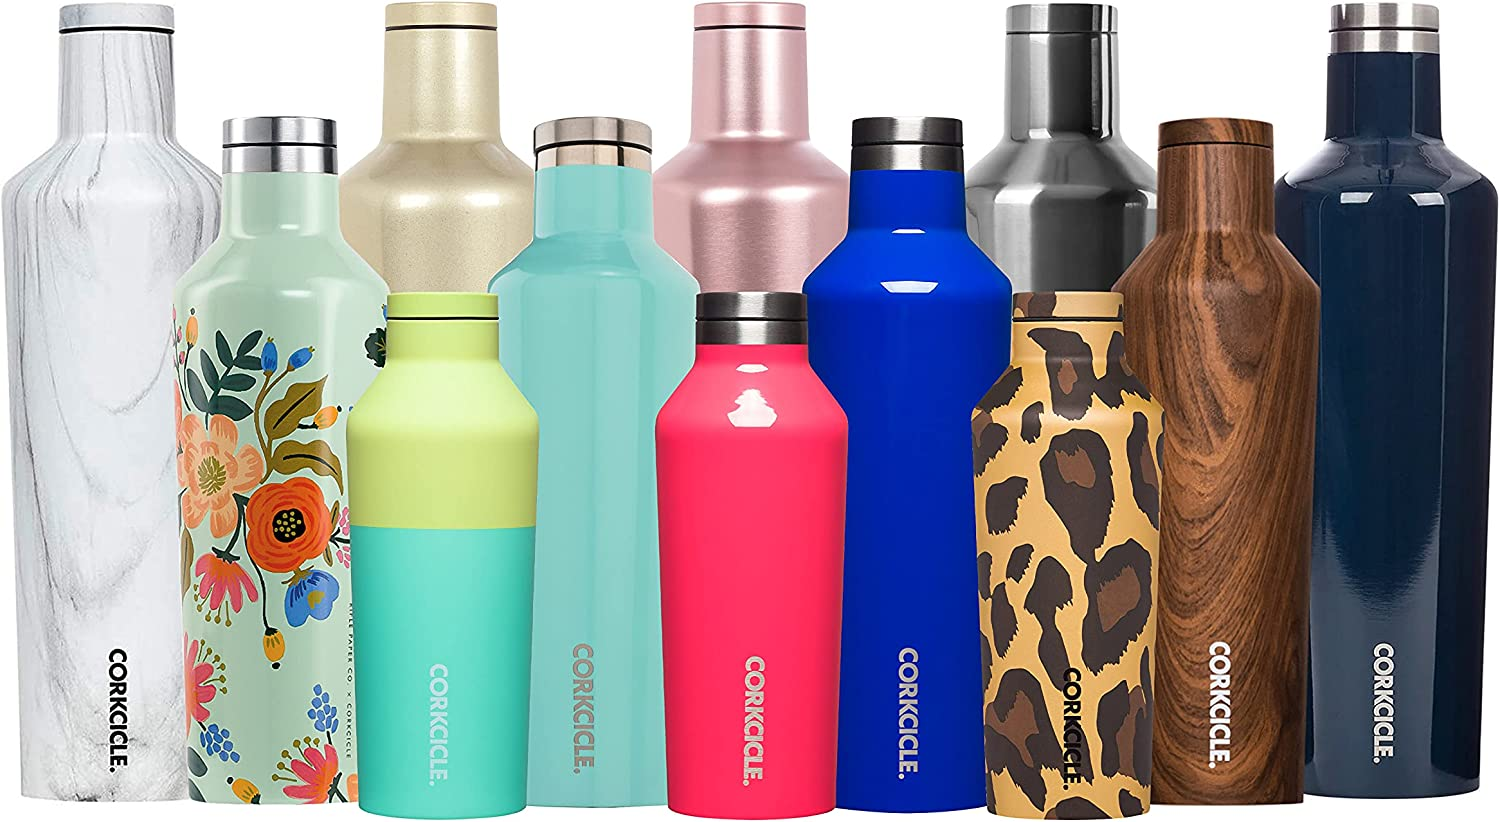 Corkcicle 60 Ounce Replacement Screw On Top Only for Canteen Bottles BPA Free